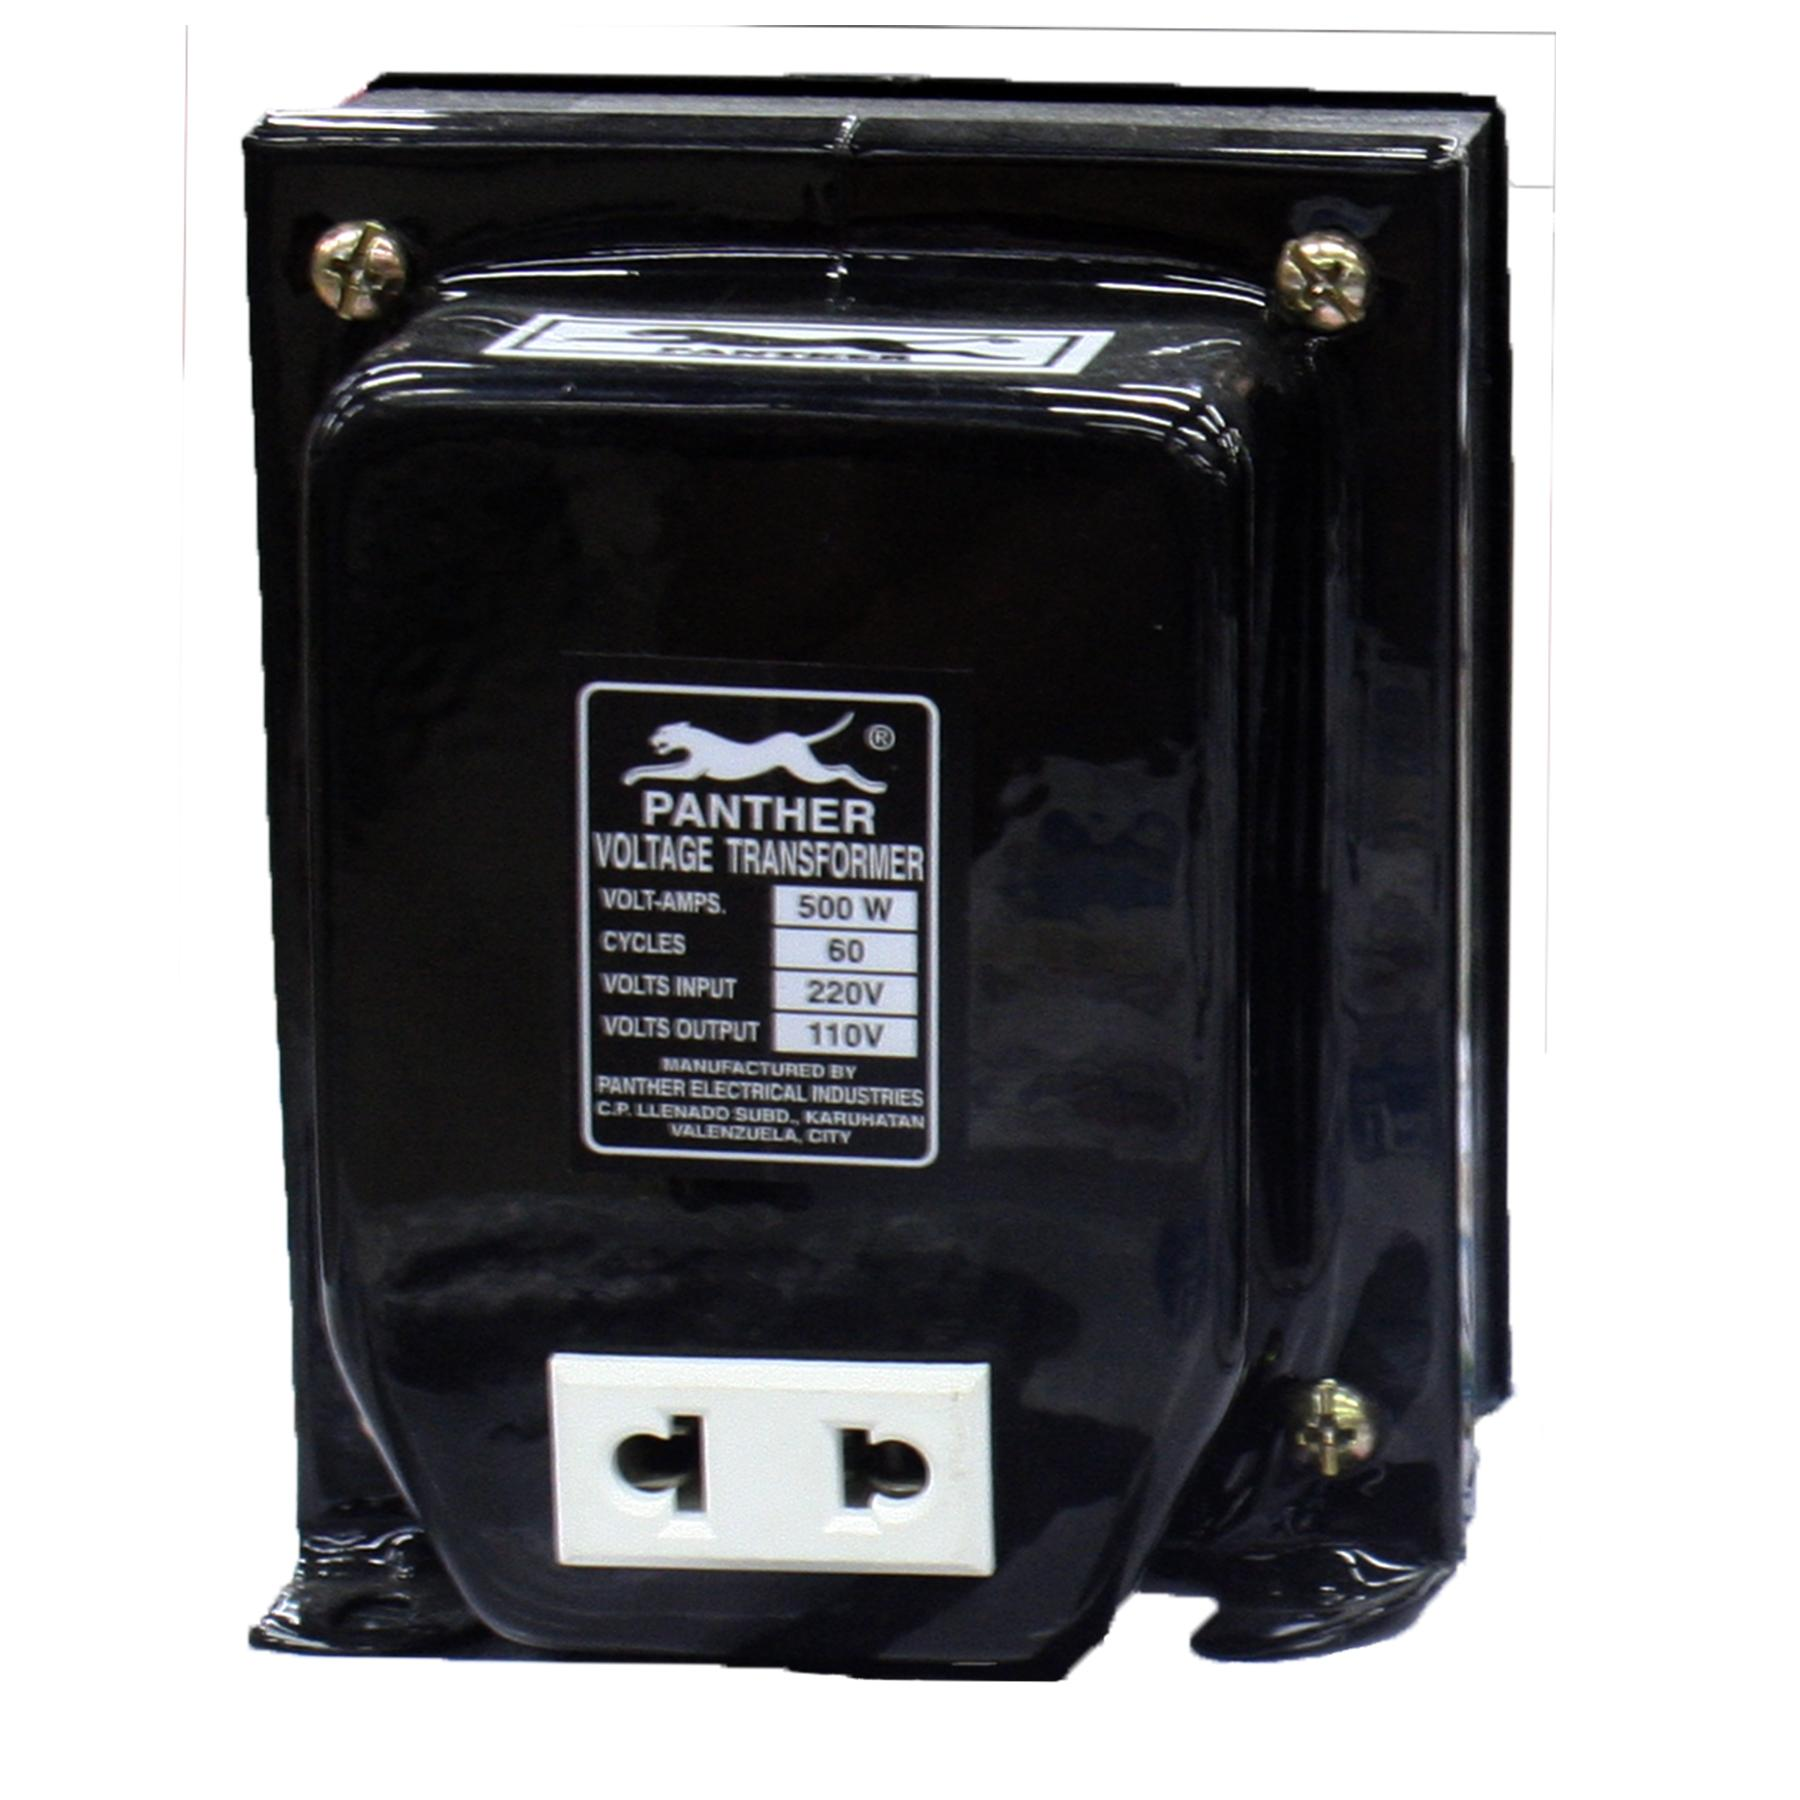 Panther Step-Down Transformer 500W Philippines